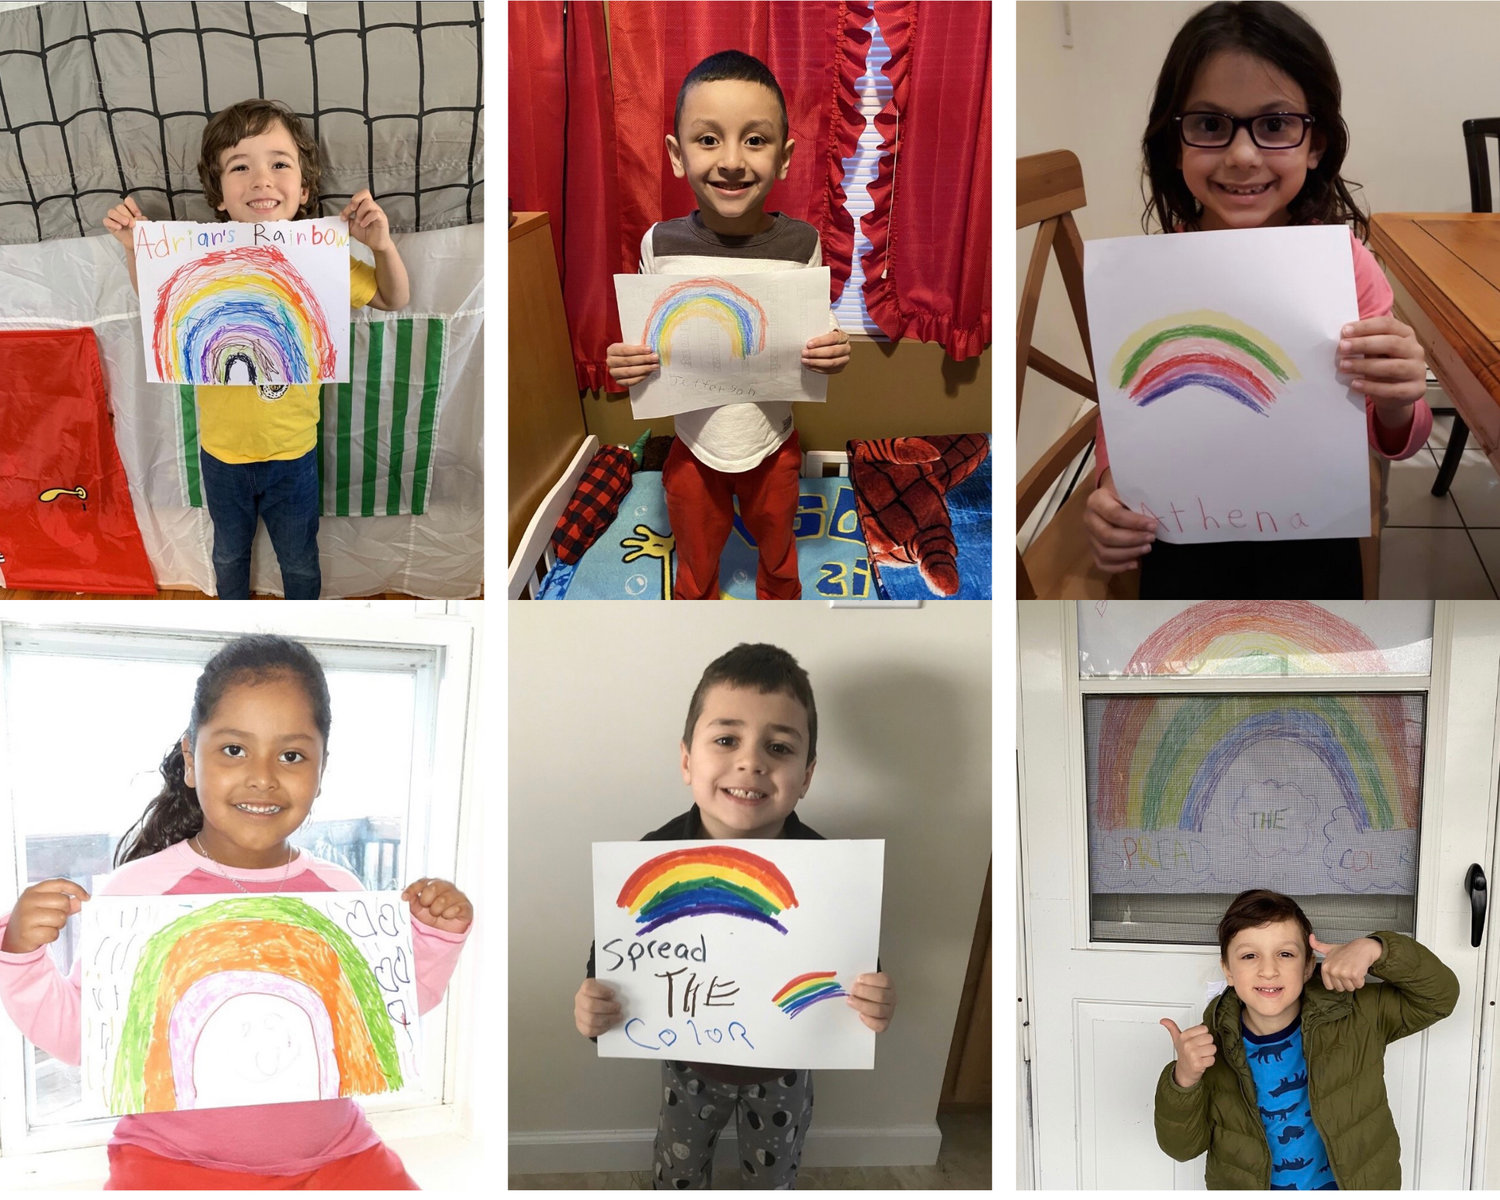 Top row from left, Adrian Gadea Shapovalov, Jefferson Mojica Rivas, Athena Thomaidis, Liz Ruano, and bottom row from left, Daniel Boatman, and David Youssef in Alyson Dellavecchia's kindergarten and first grade class at Deasy Elementary School created rainbow artwork to spread hope as they learn from home due to school closures from the coronavirus.